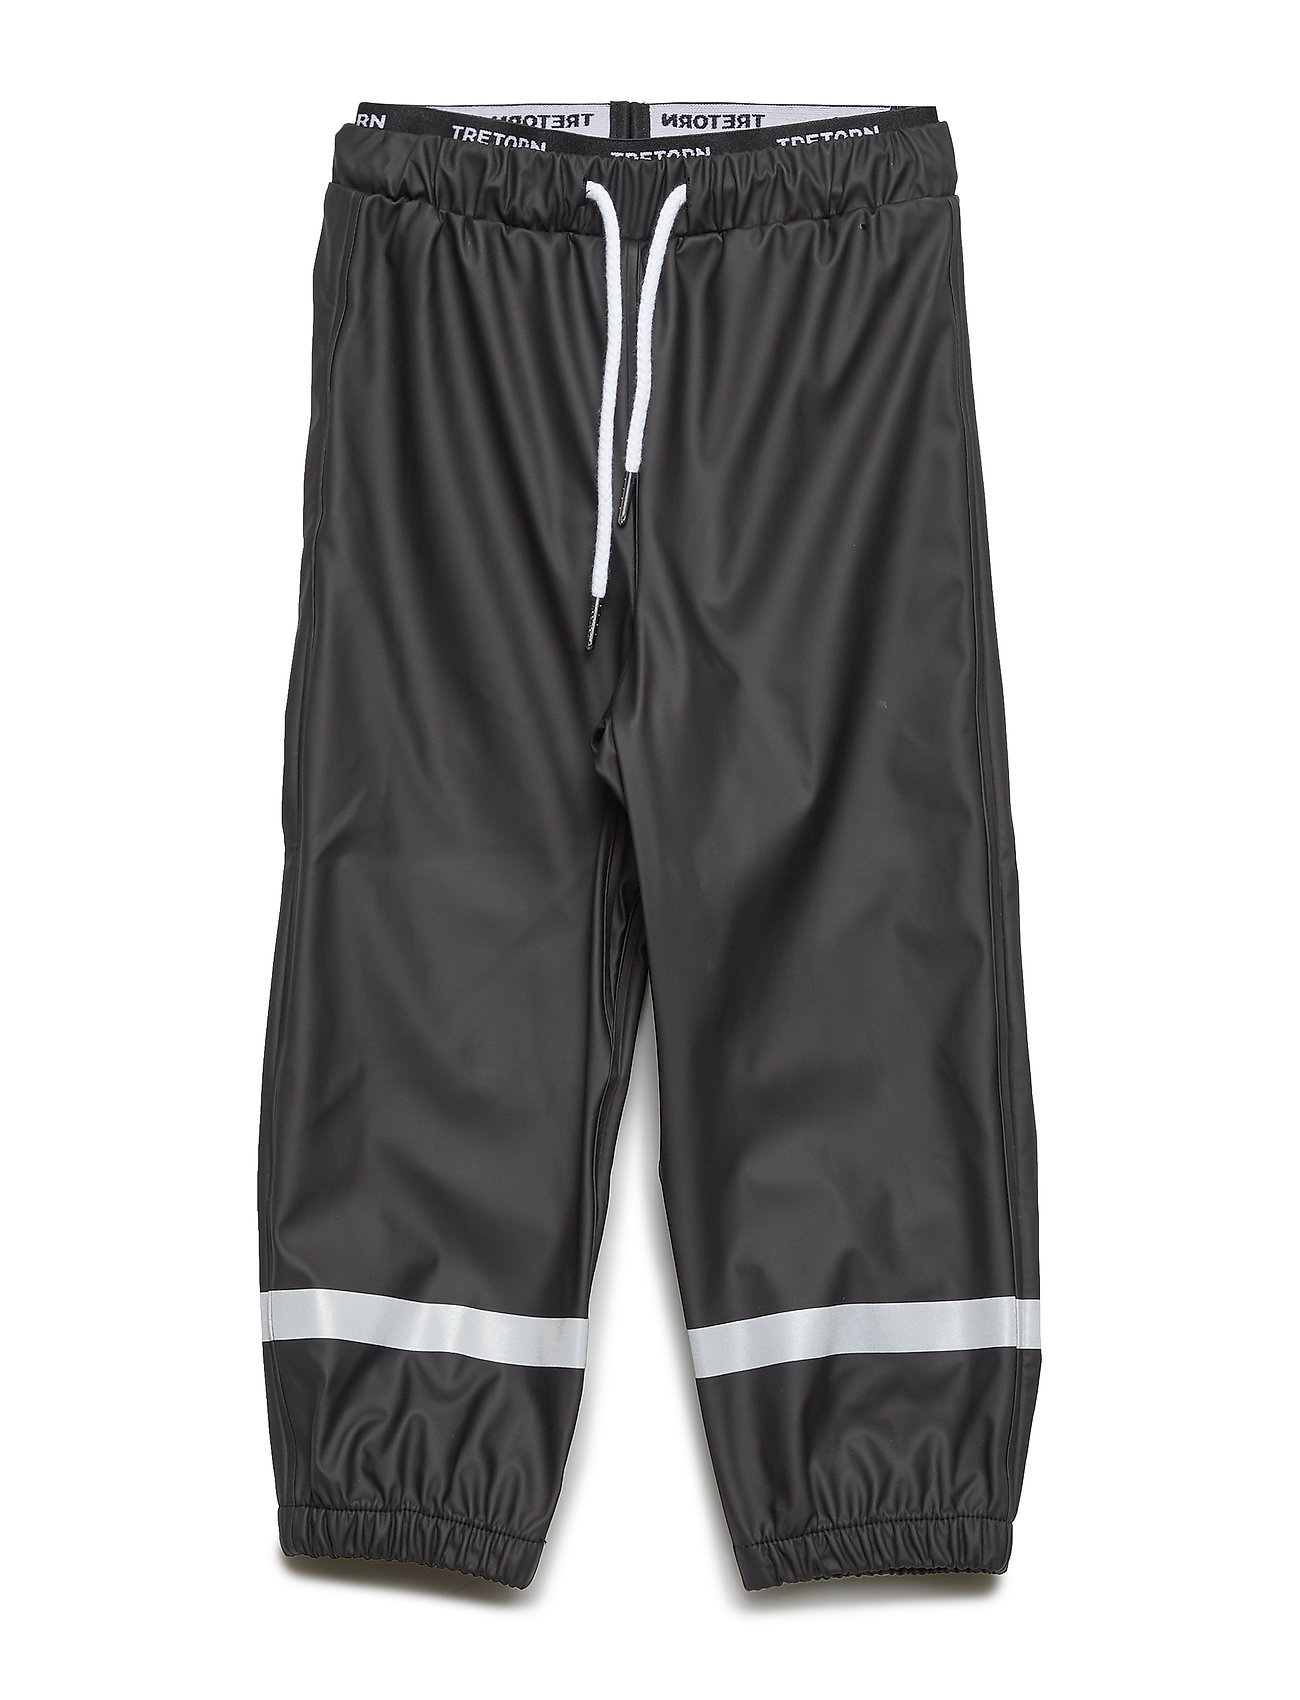 Tretorn KIDS EXPLORER RAINPANTS - 011/JET BLACK